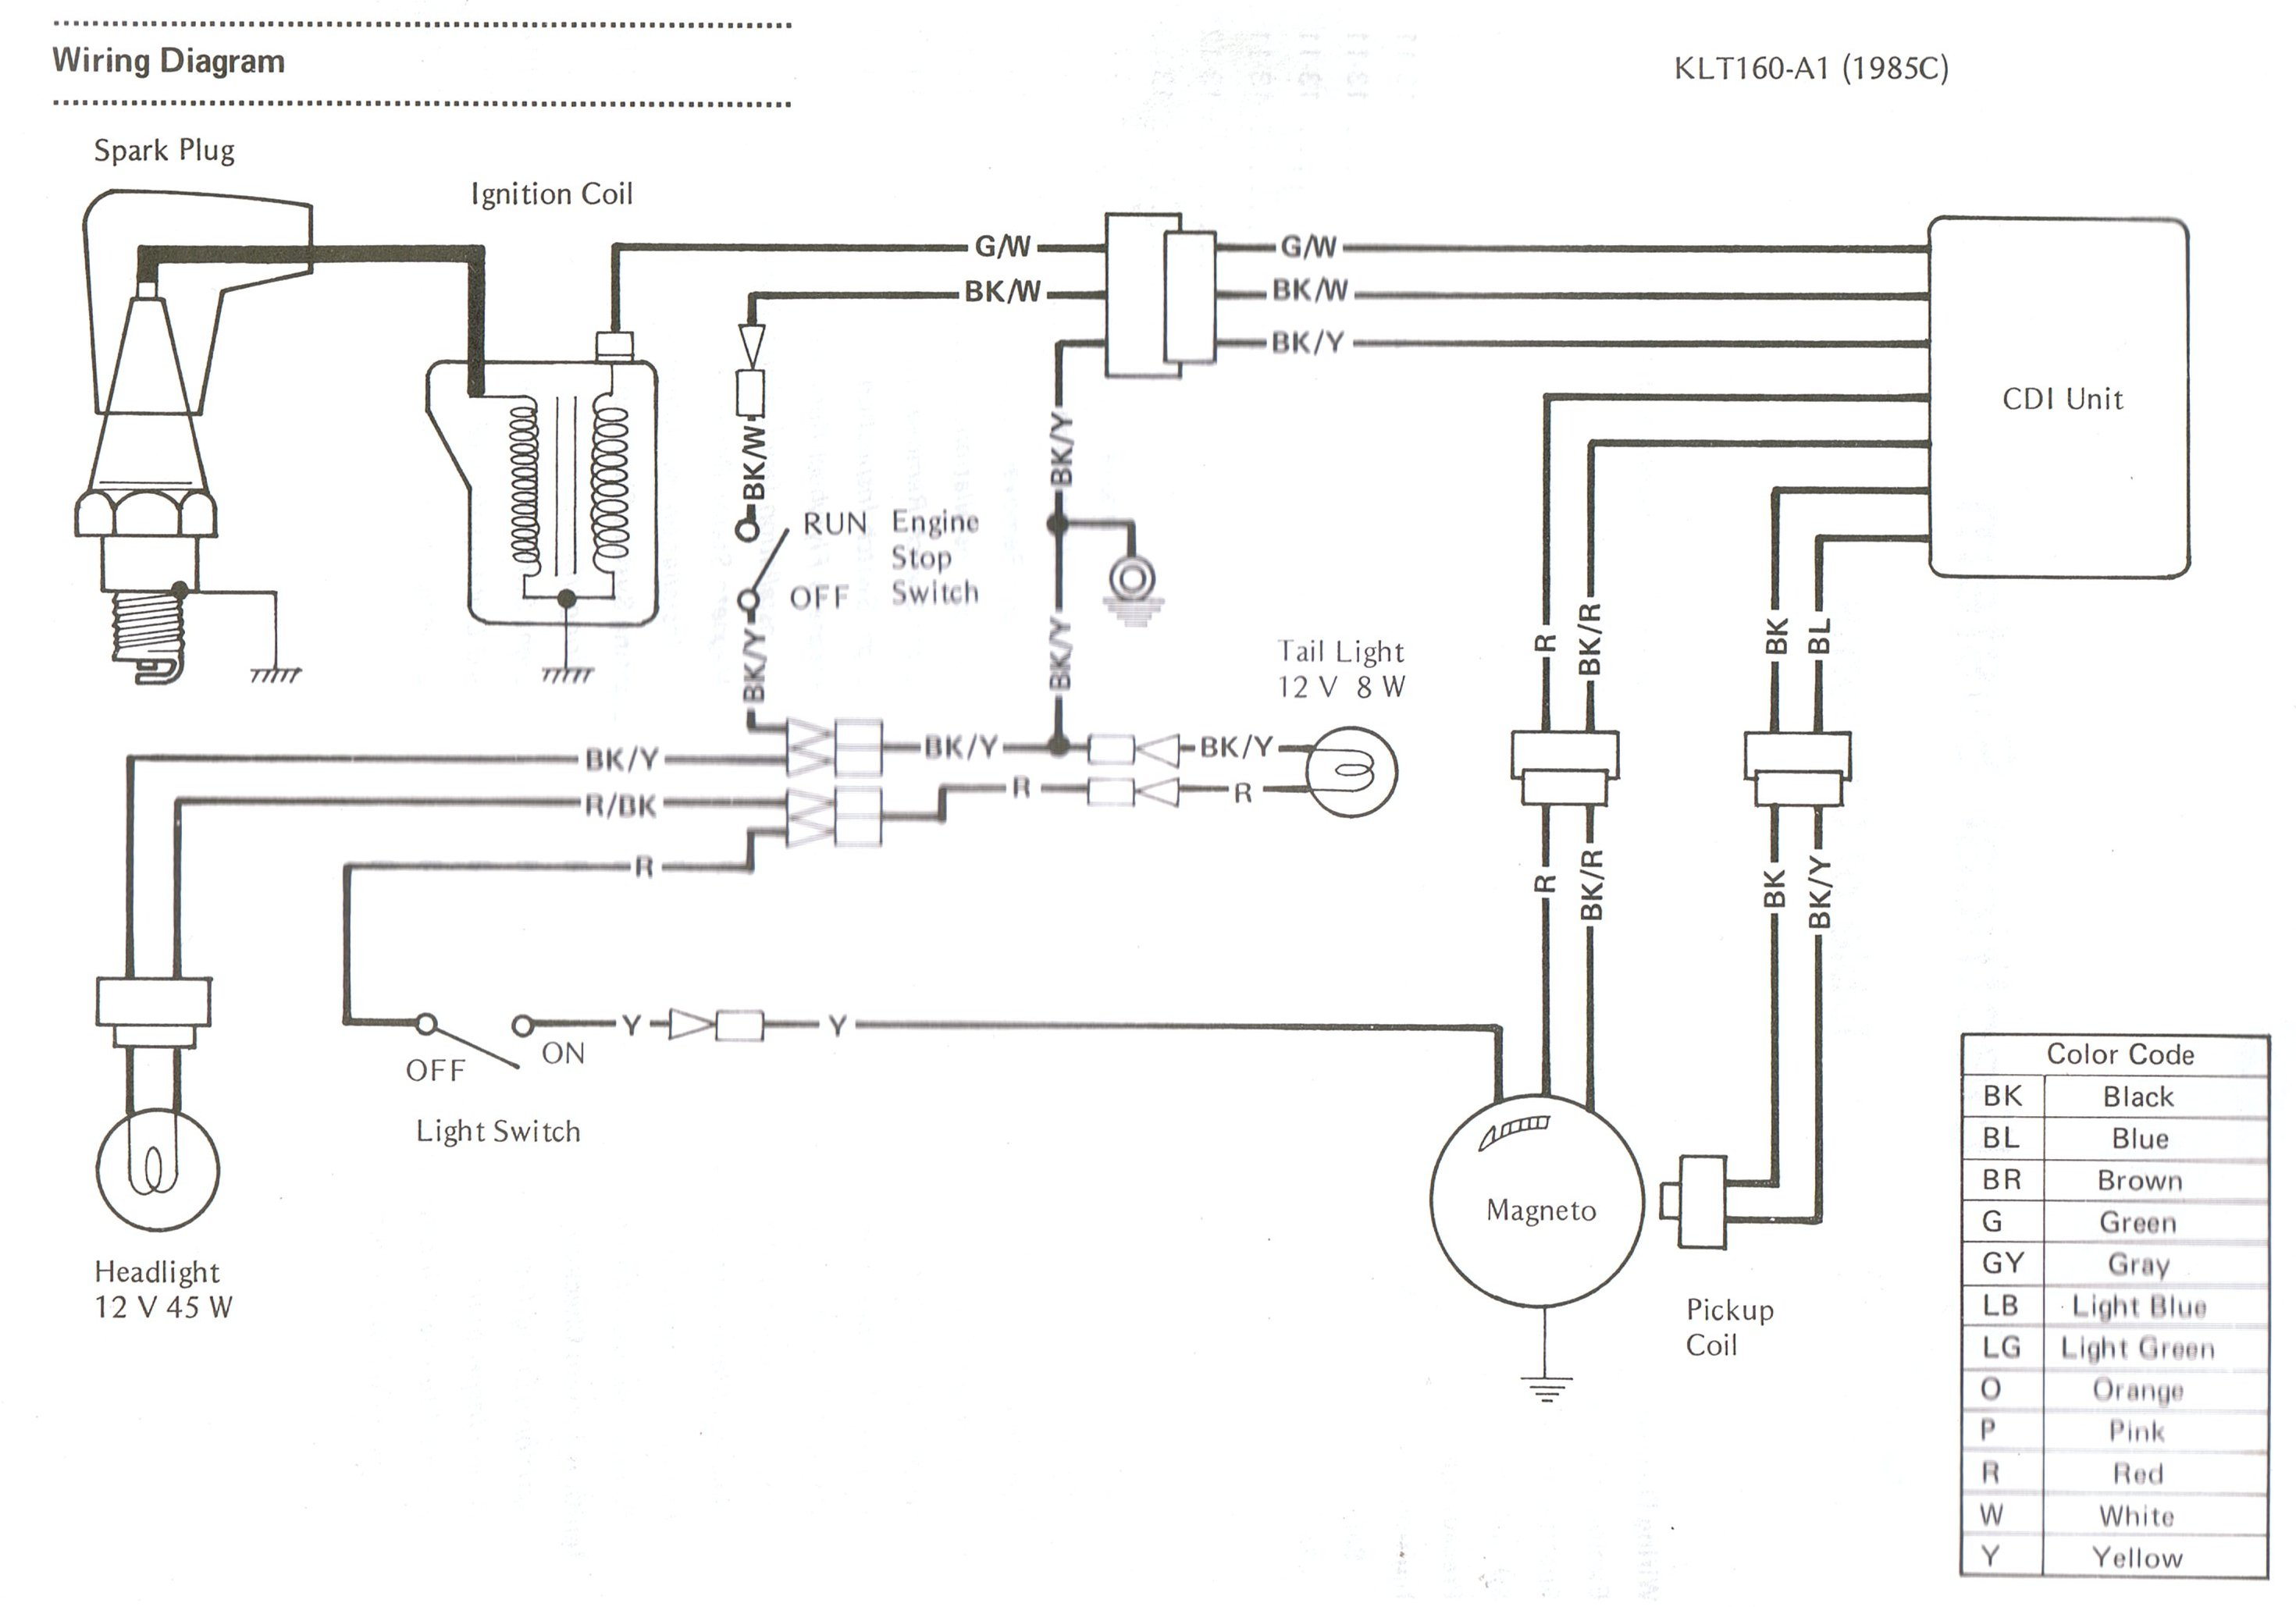 KLT160A1x85 kawasaki cdi wiring diagram kawasaki wiring diagrams instruction 2010 klx 110 wiring diagram at bayanpartner.co